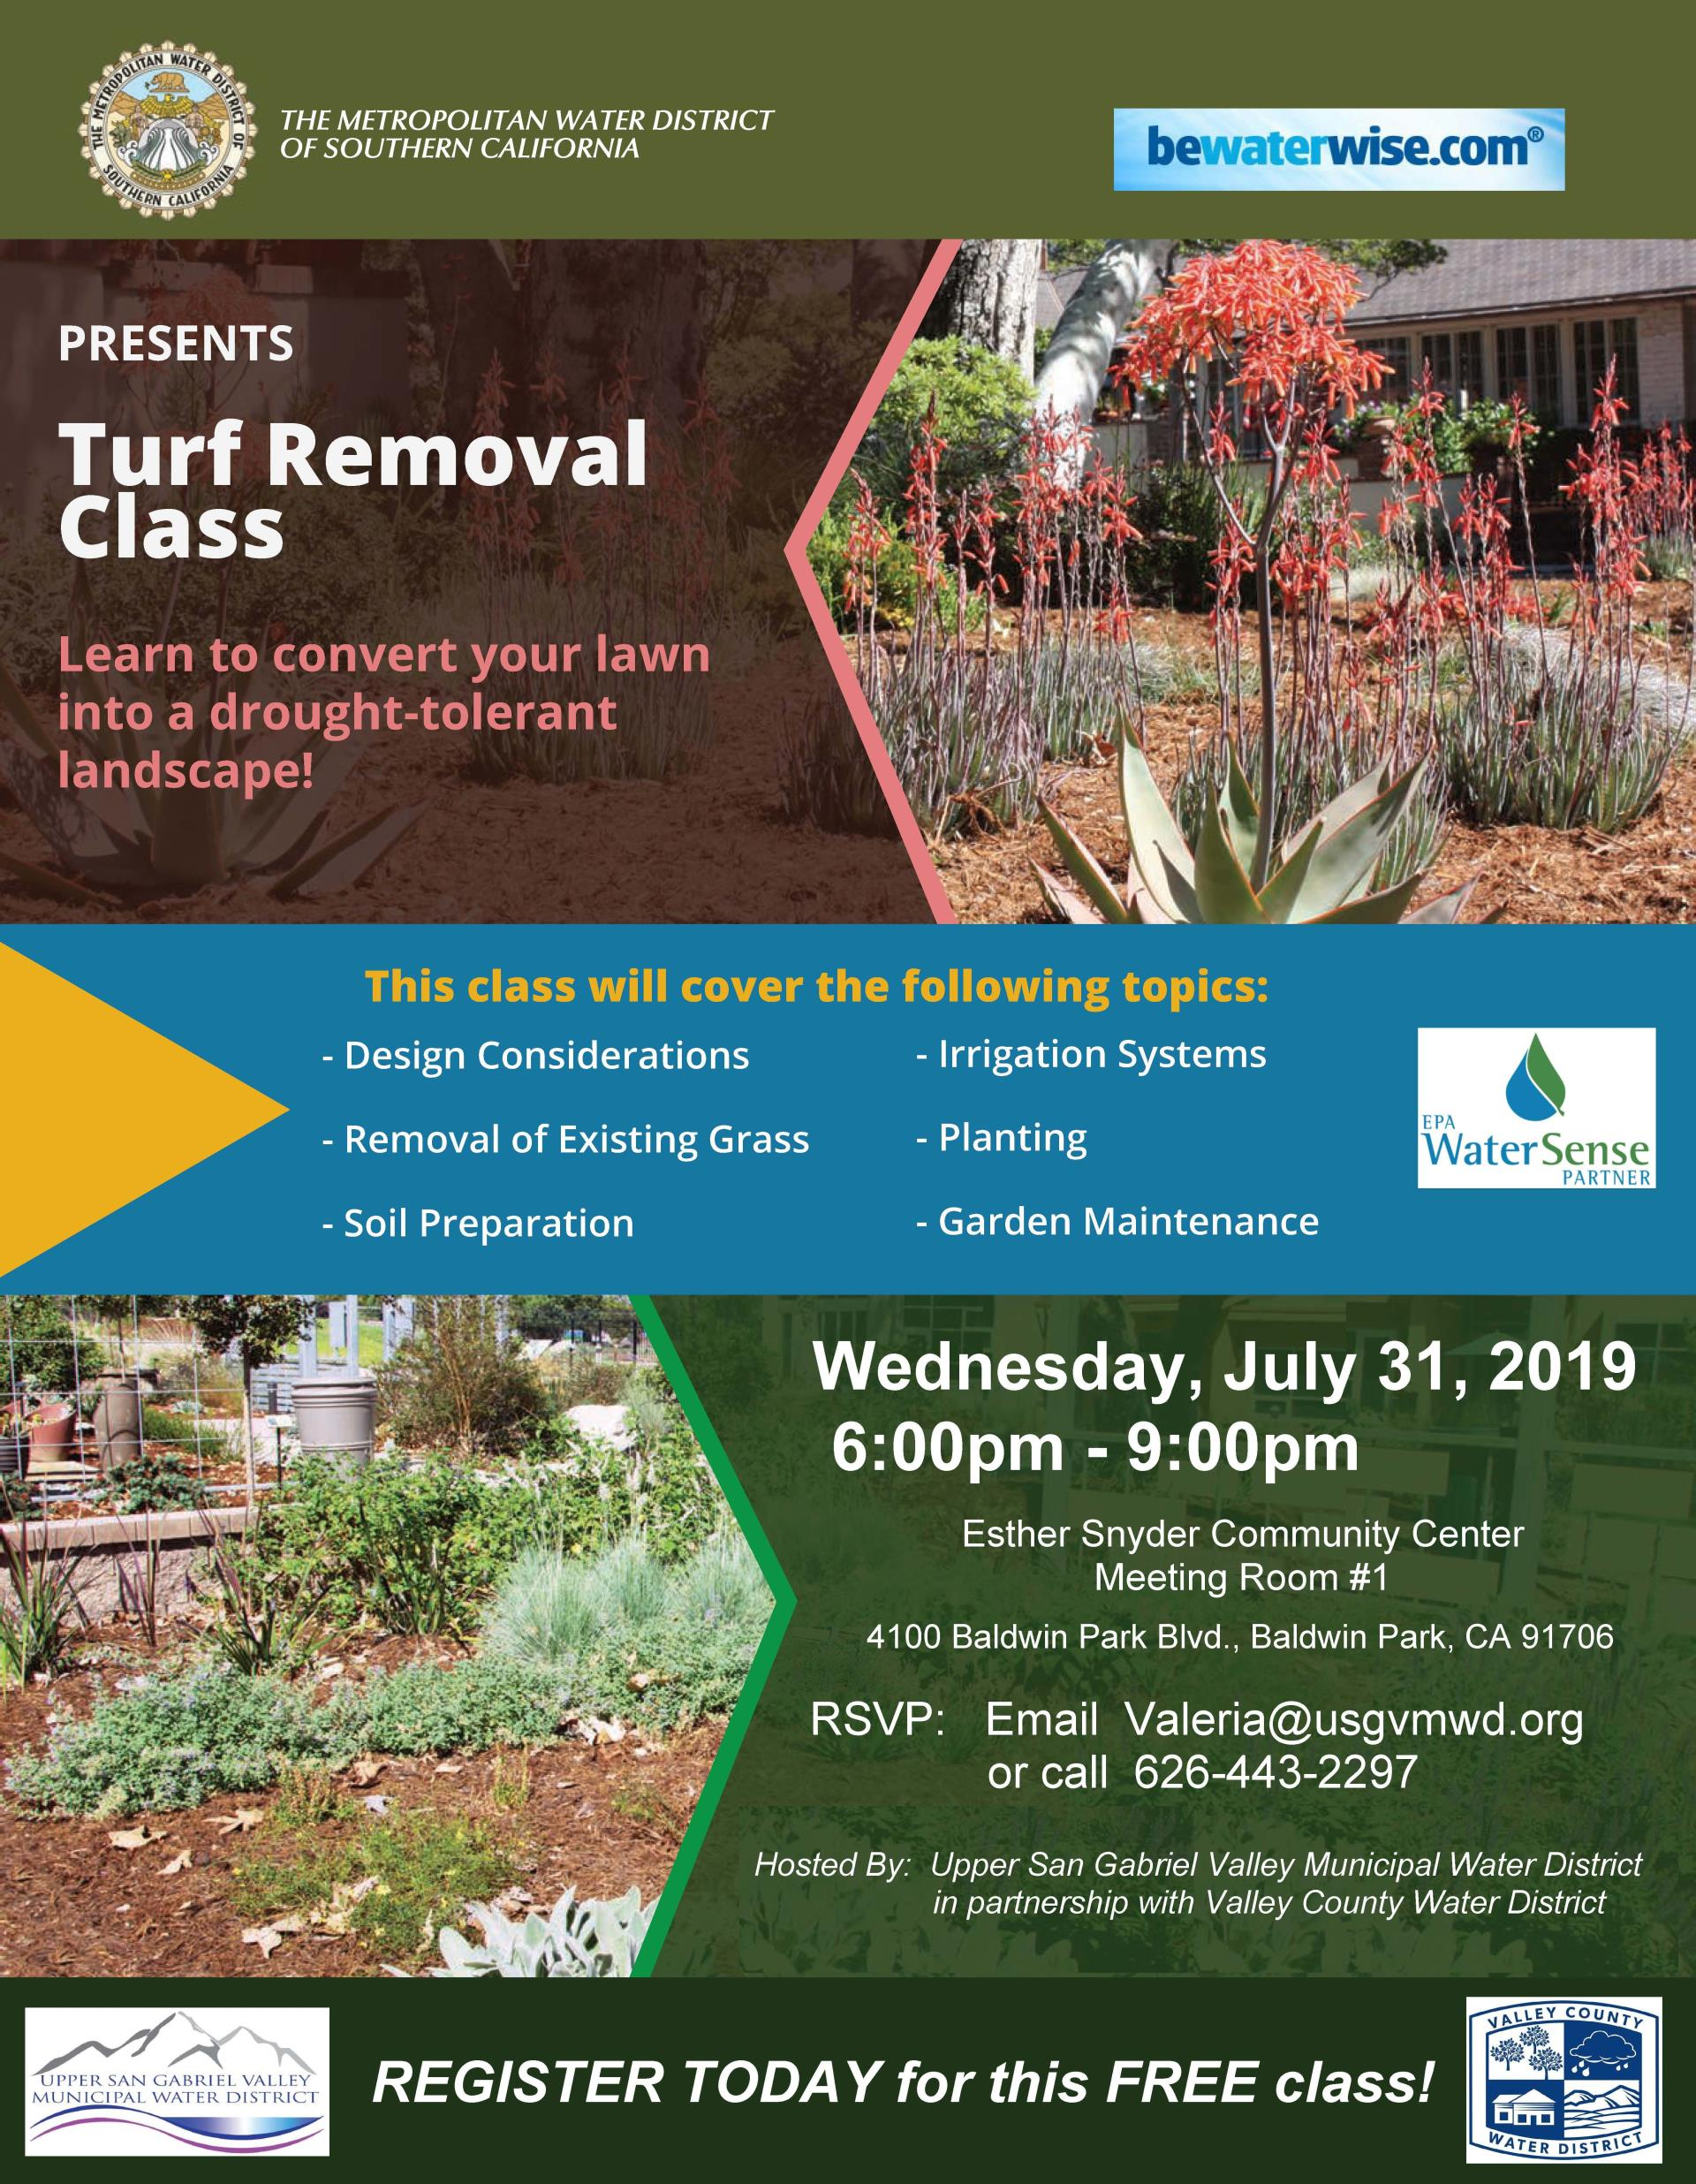 Free Turf Removal Class